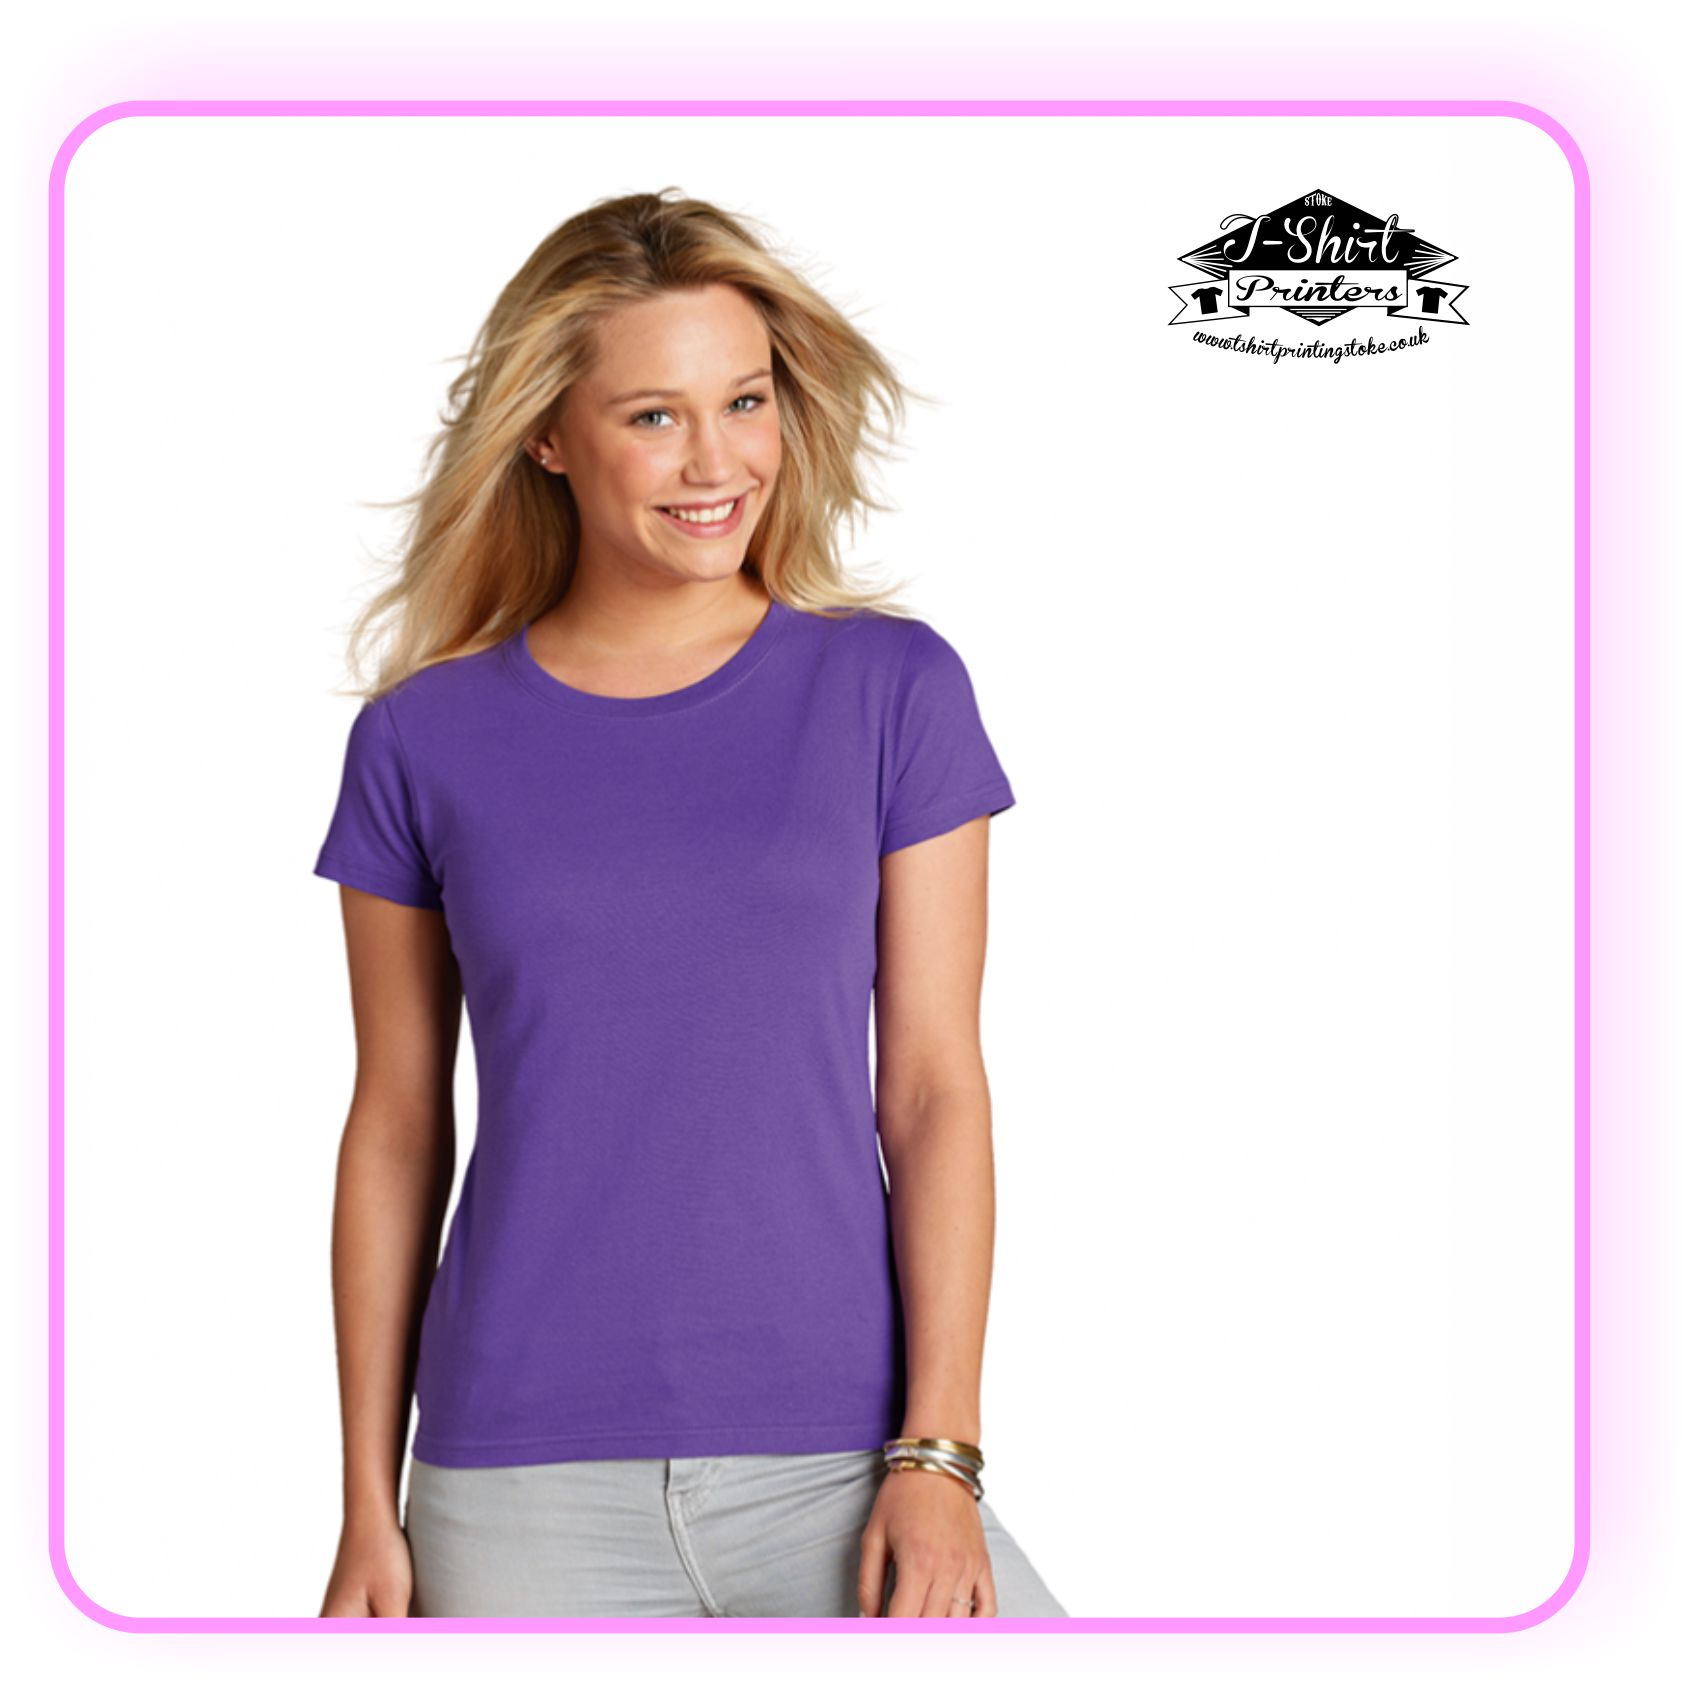 Printed Ladies T Shirts